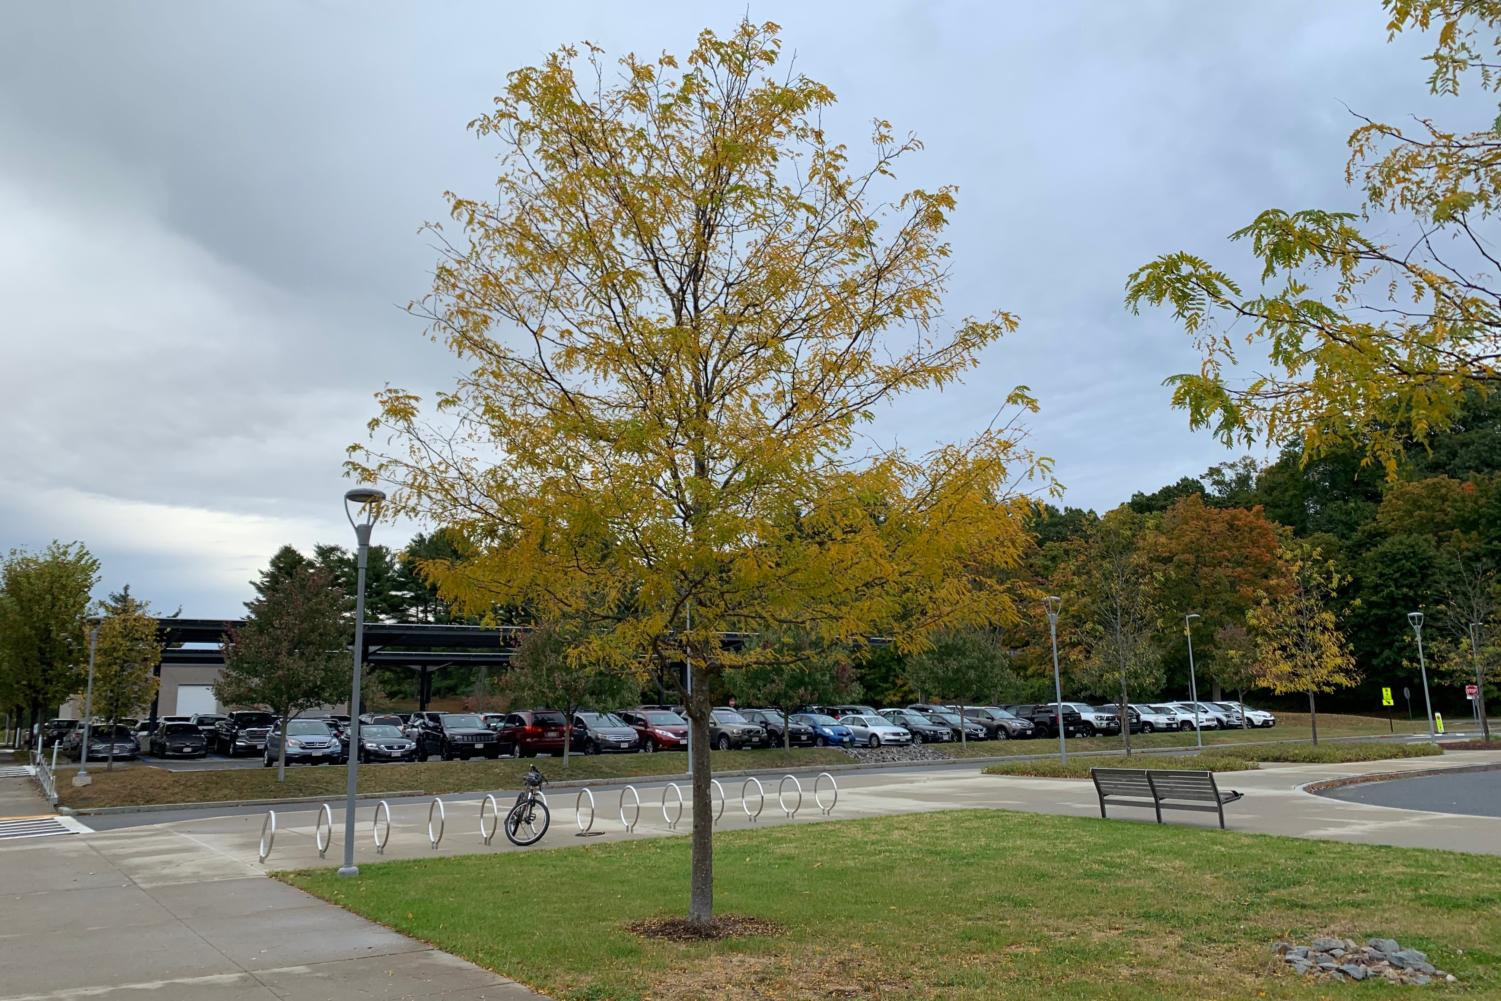 As the colors of the leaves start to change, WSPN has created a fun challenge for WHS students.